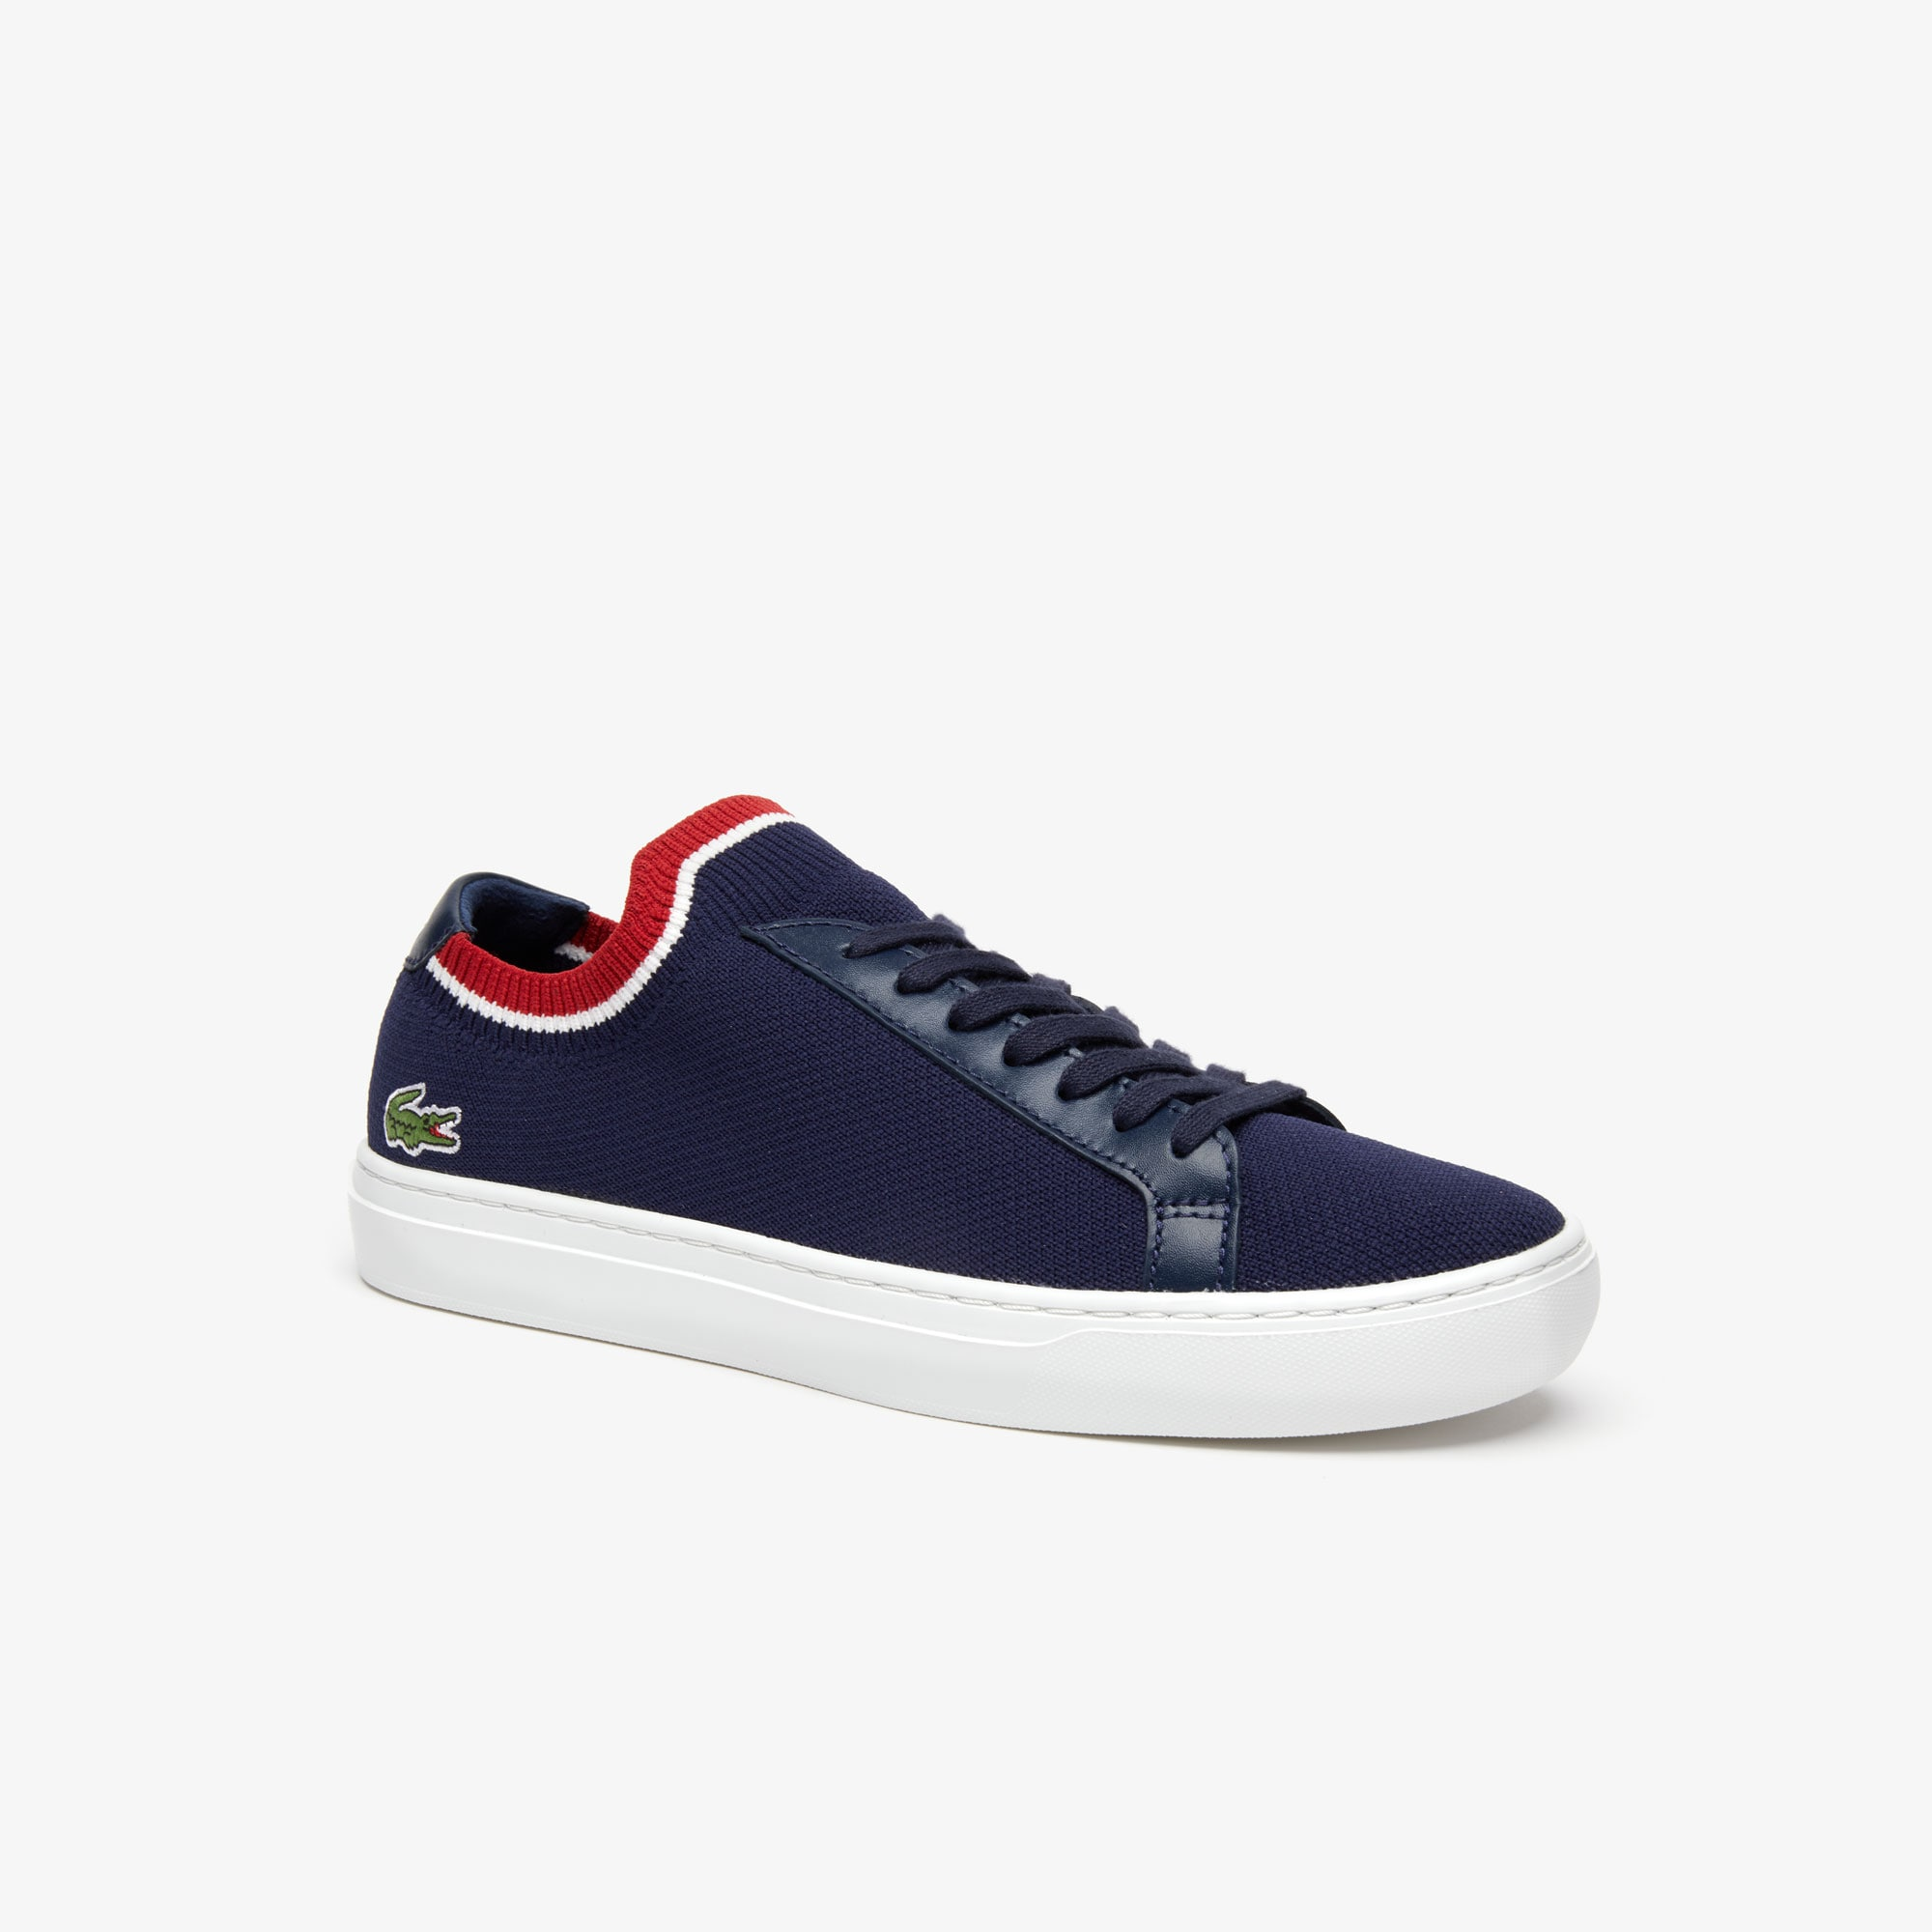 e899114033 Chaussures homme | Collection Homme | LACOSTE